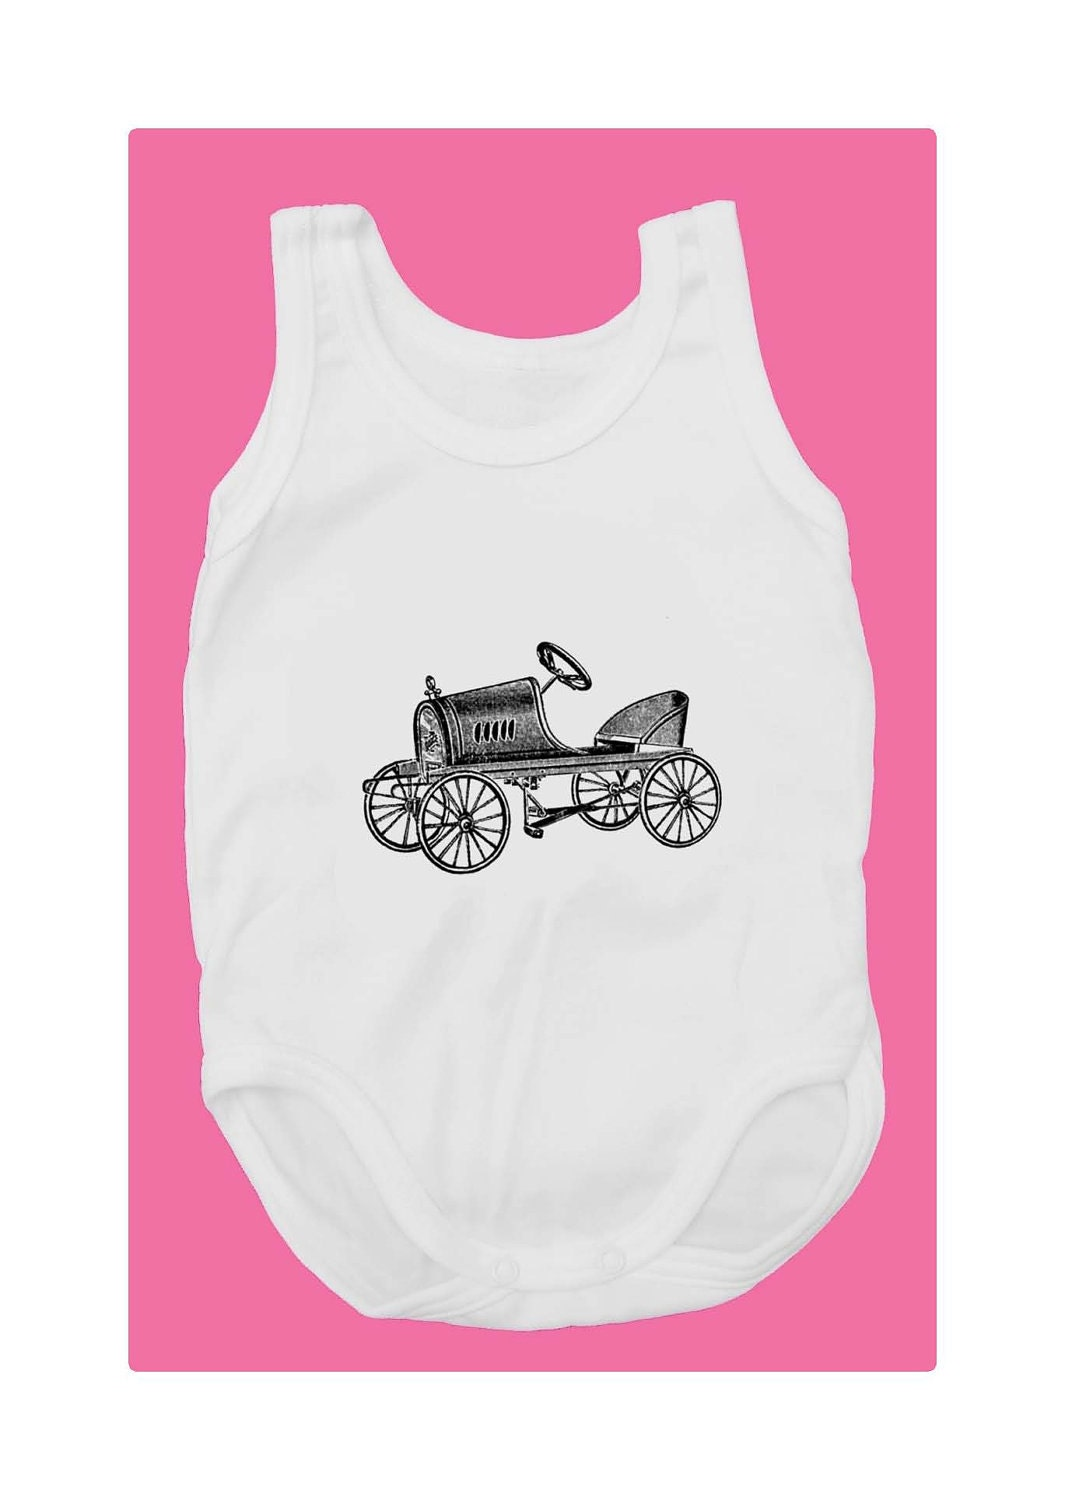 Fitipaldi (100% White cotton baby bodysuit with vintage toy racing car print) - mmmfantasiadealgodon